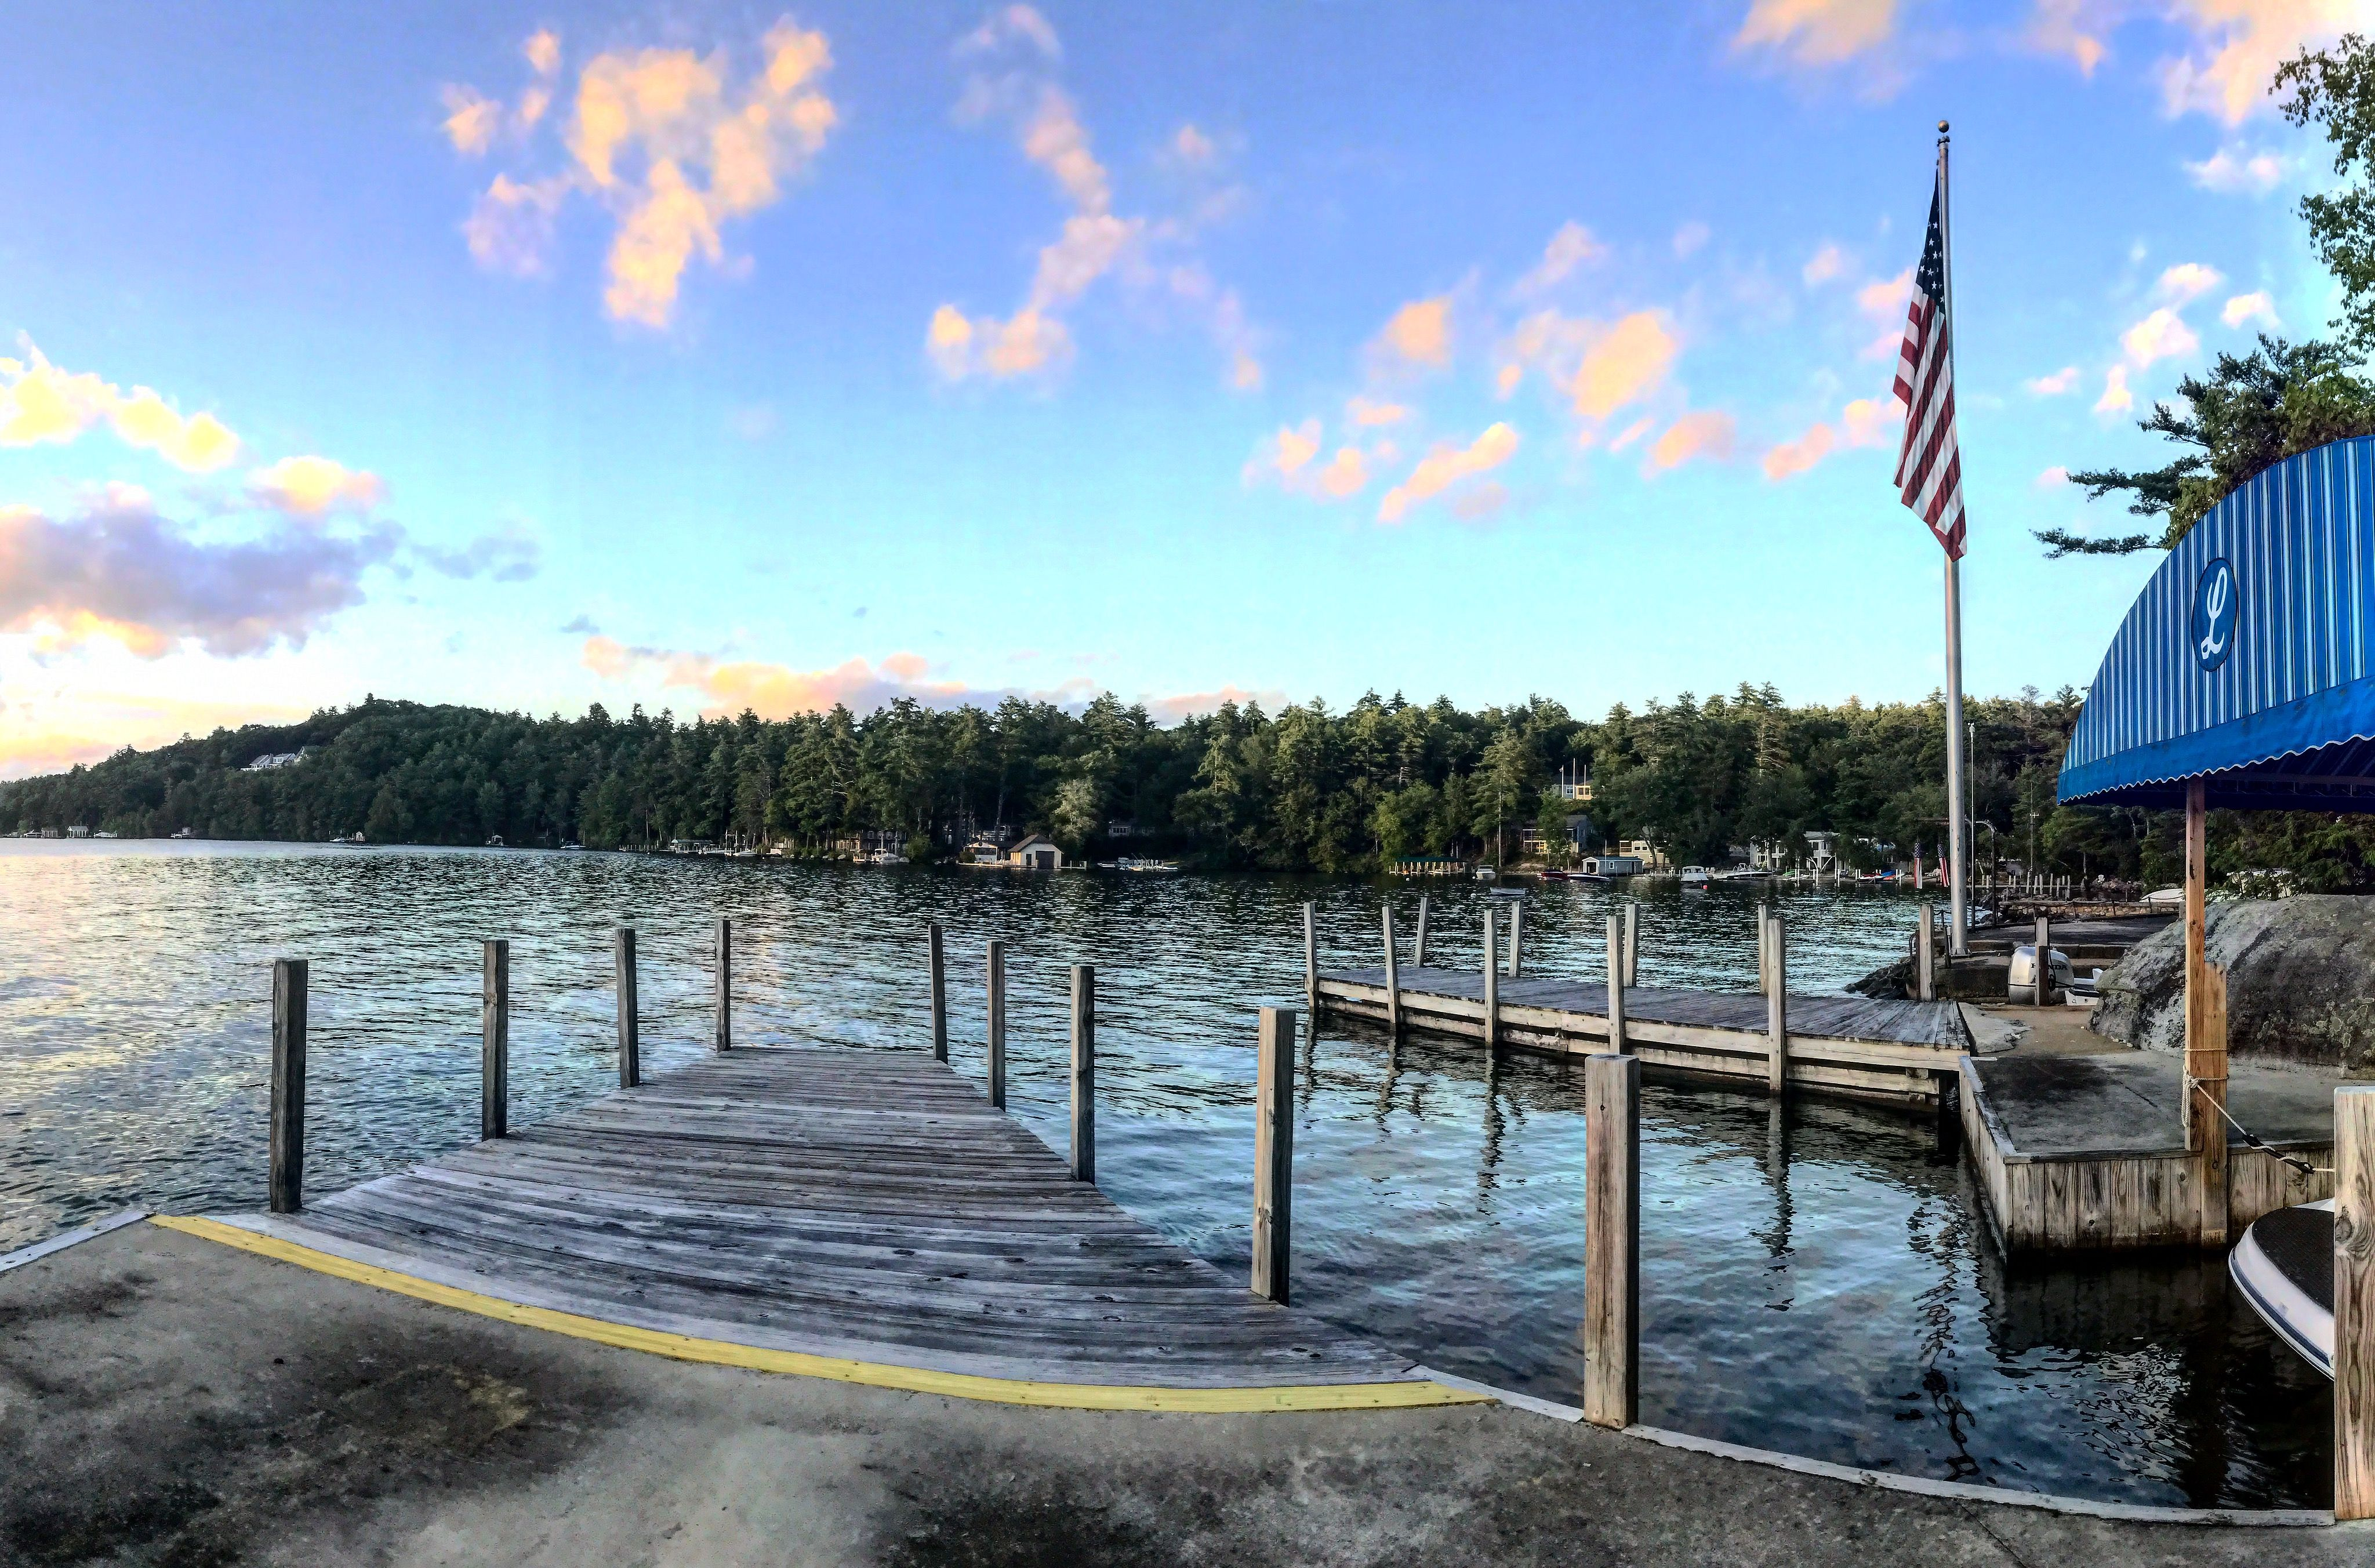 word cabins motel winnipesaukee img cottages index weirs and beach lake outside